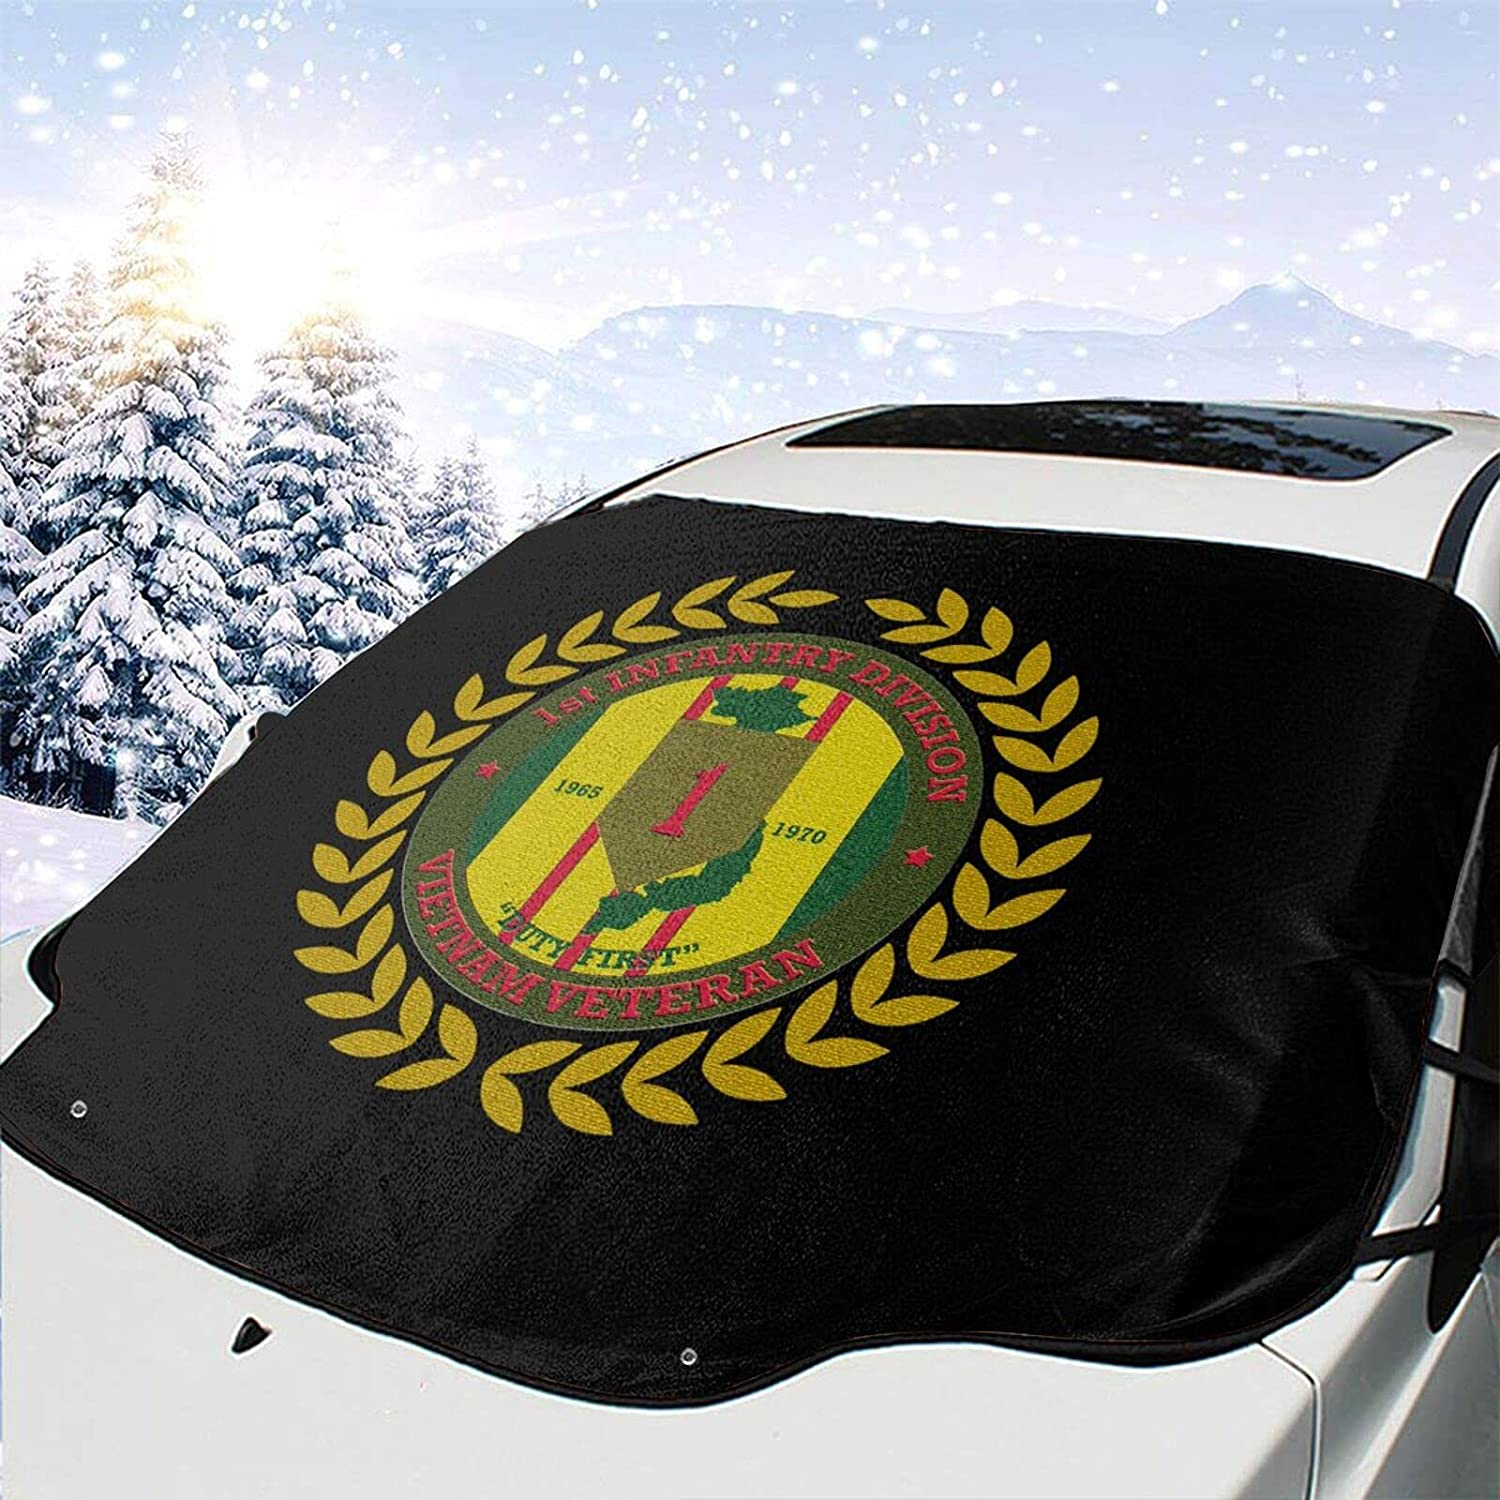 Vietnam Veteran 1st Infantry Finally popular brand Division Cover Snow A surprise price is realized Ice Windshield